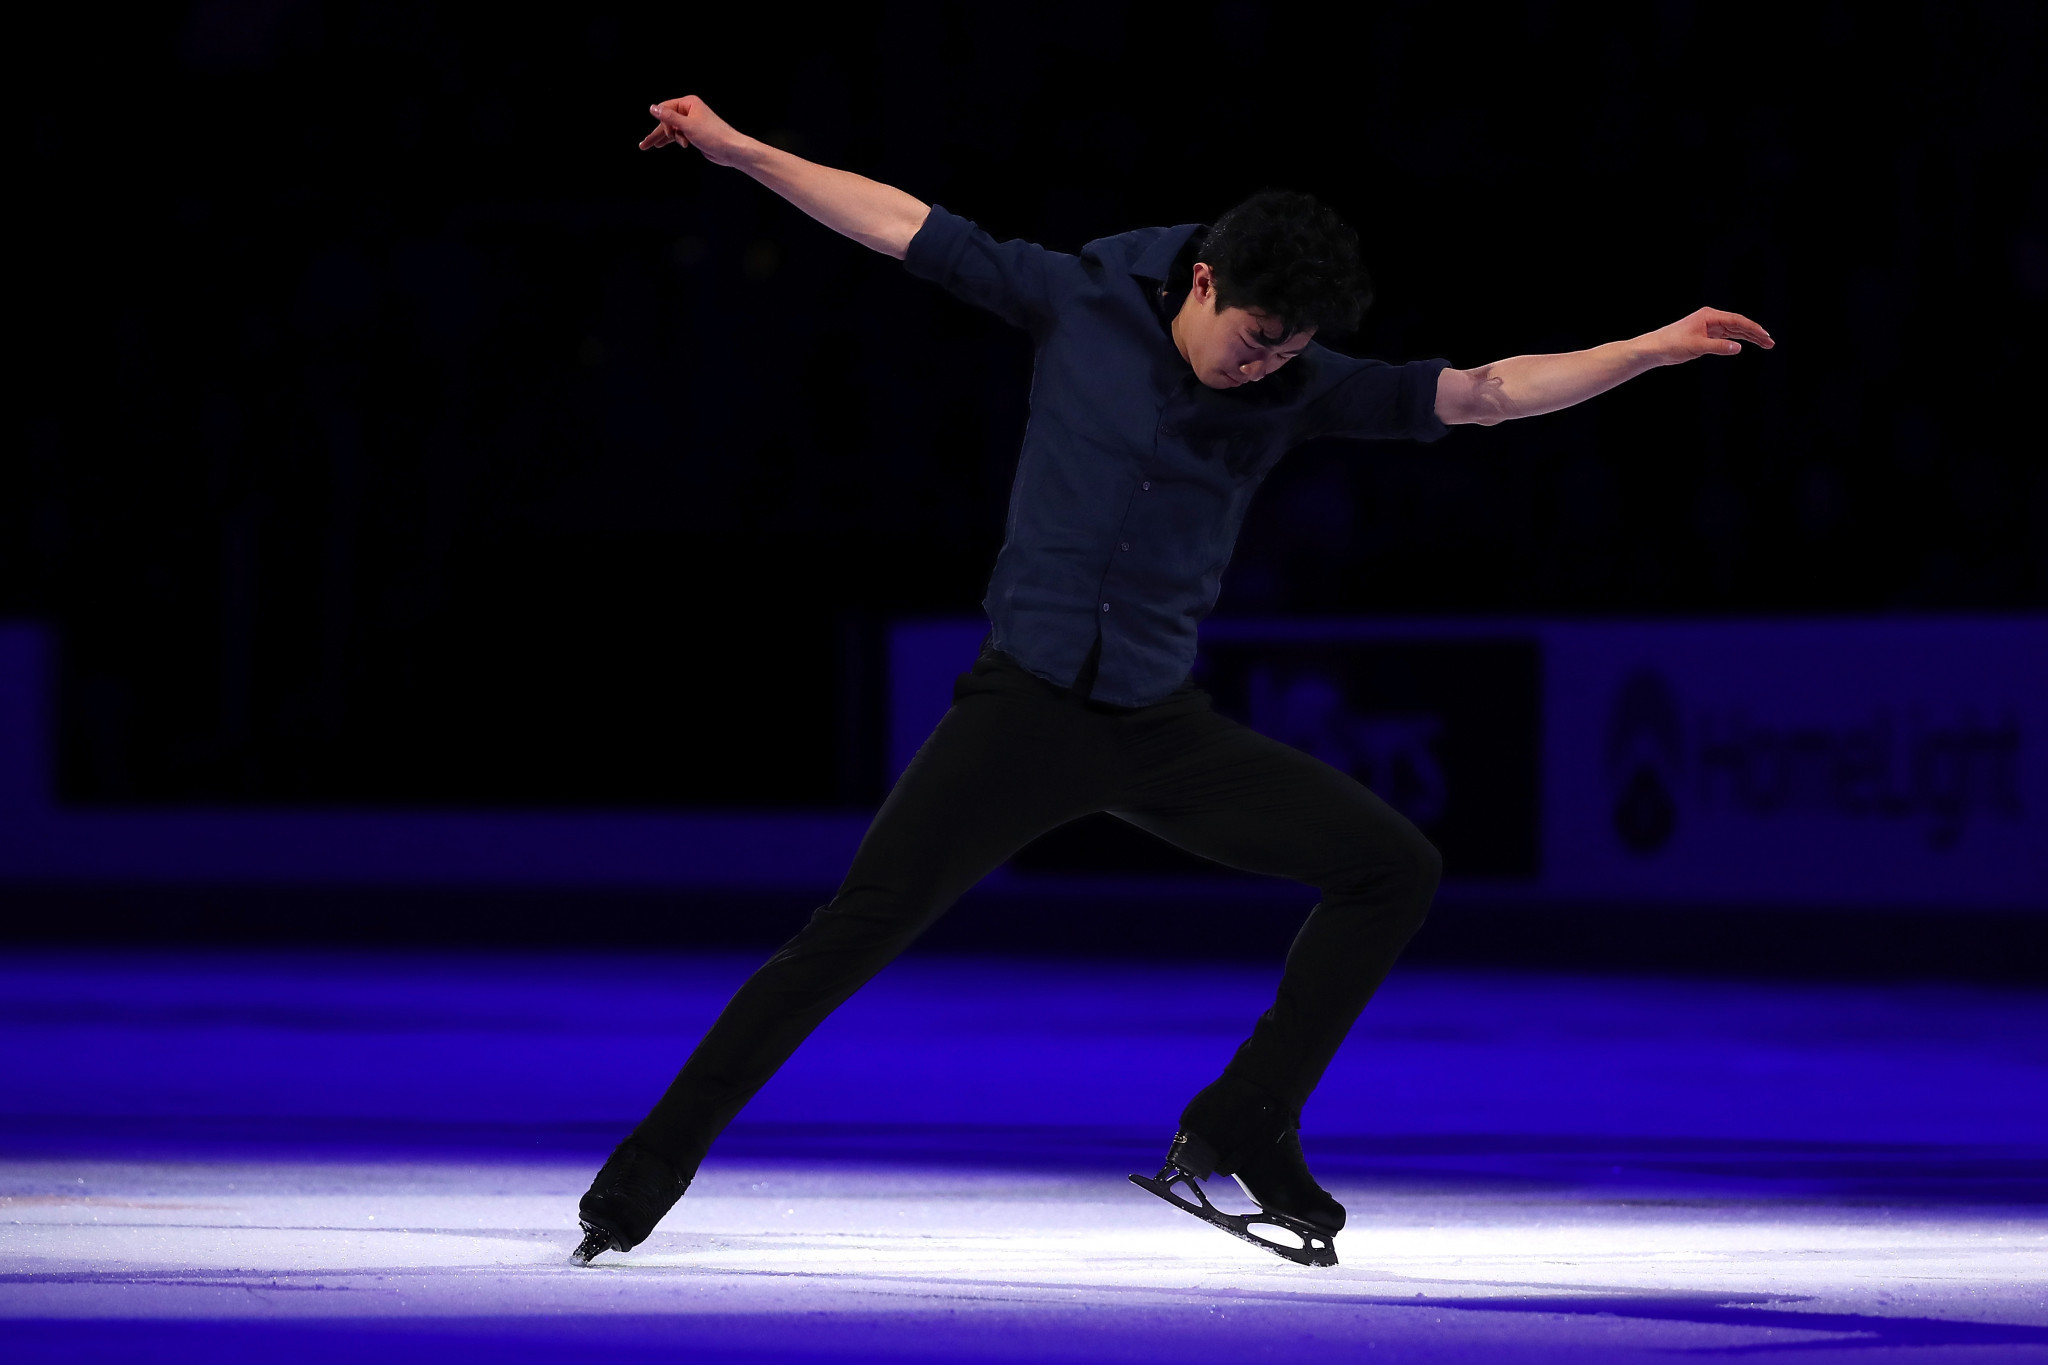 Nathan Chen has been nominated for male athlete of the month as part of the Best of January Team USA Awards ©Getty Images